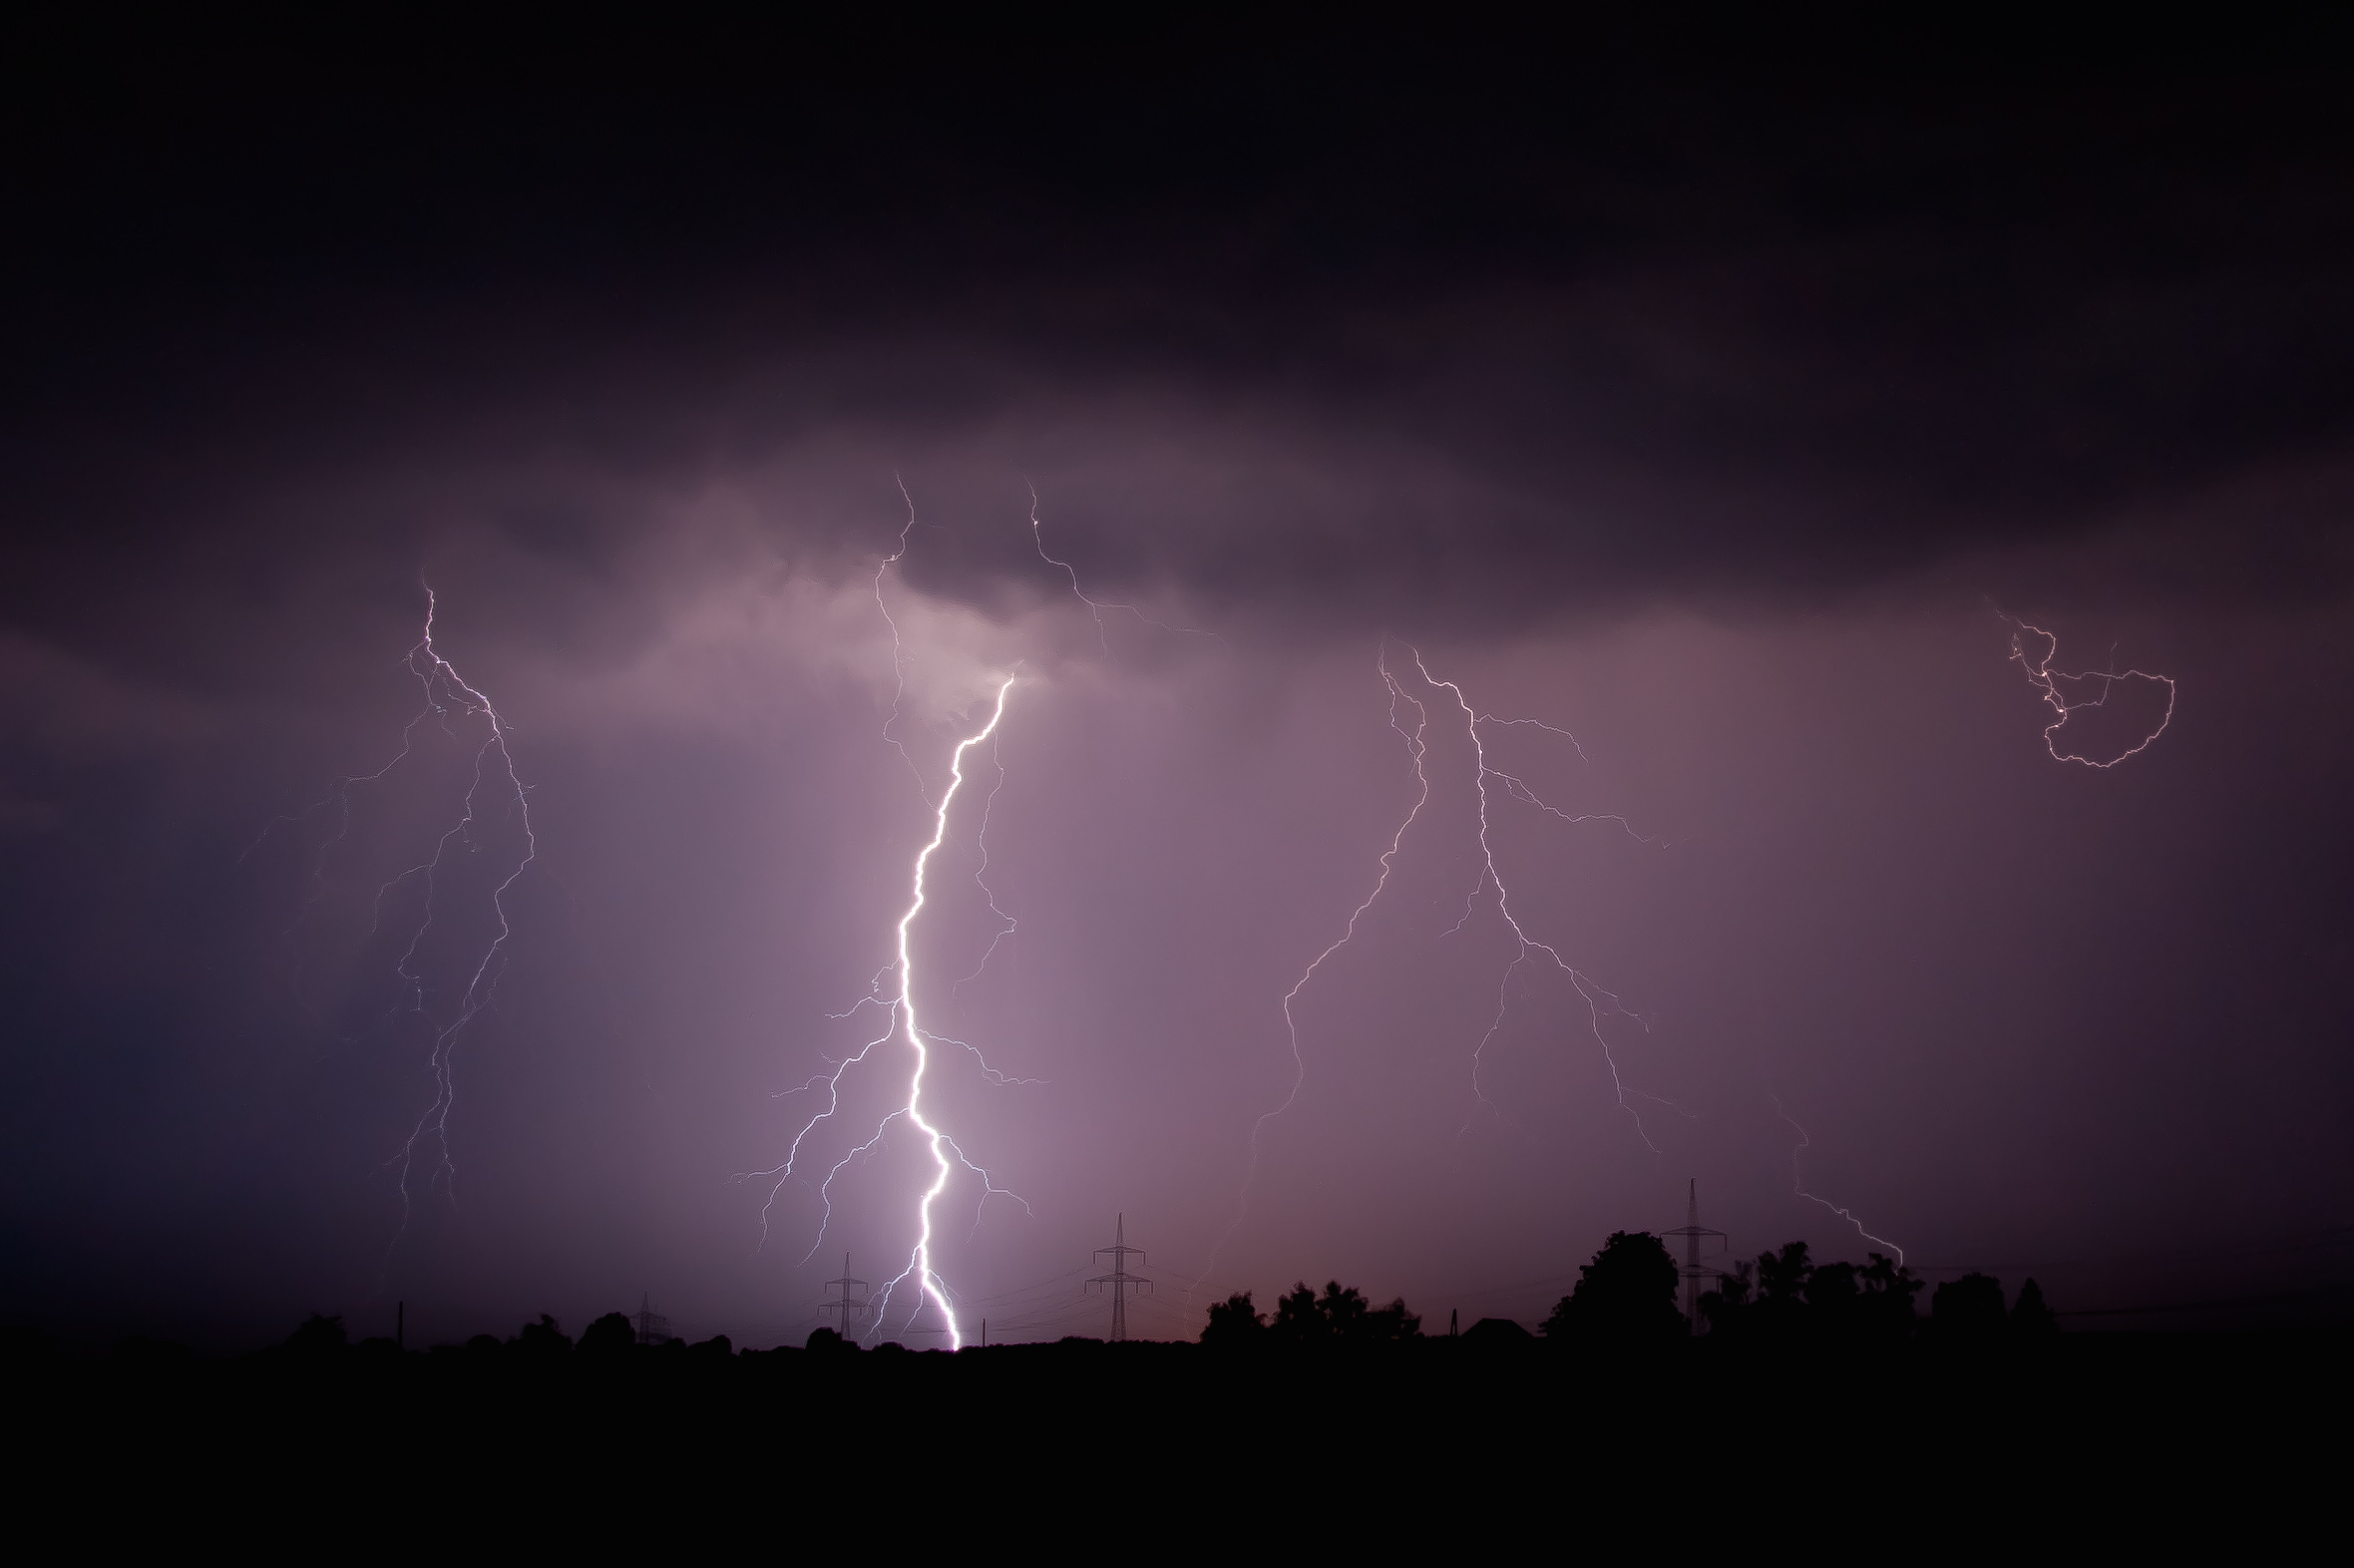 Westchester County could see some thunderstorms overnight into Friday morning.